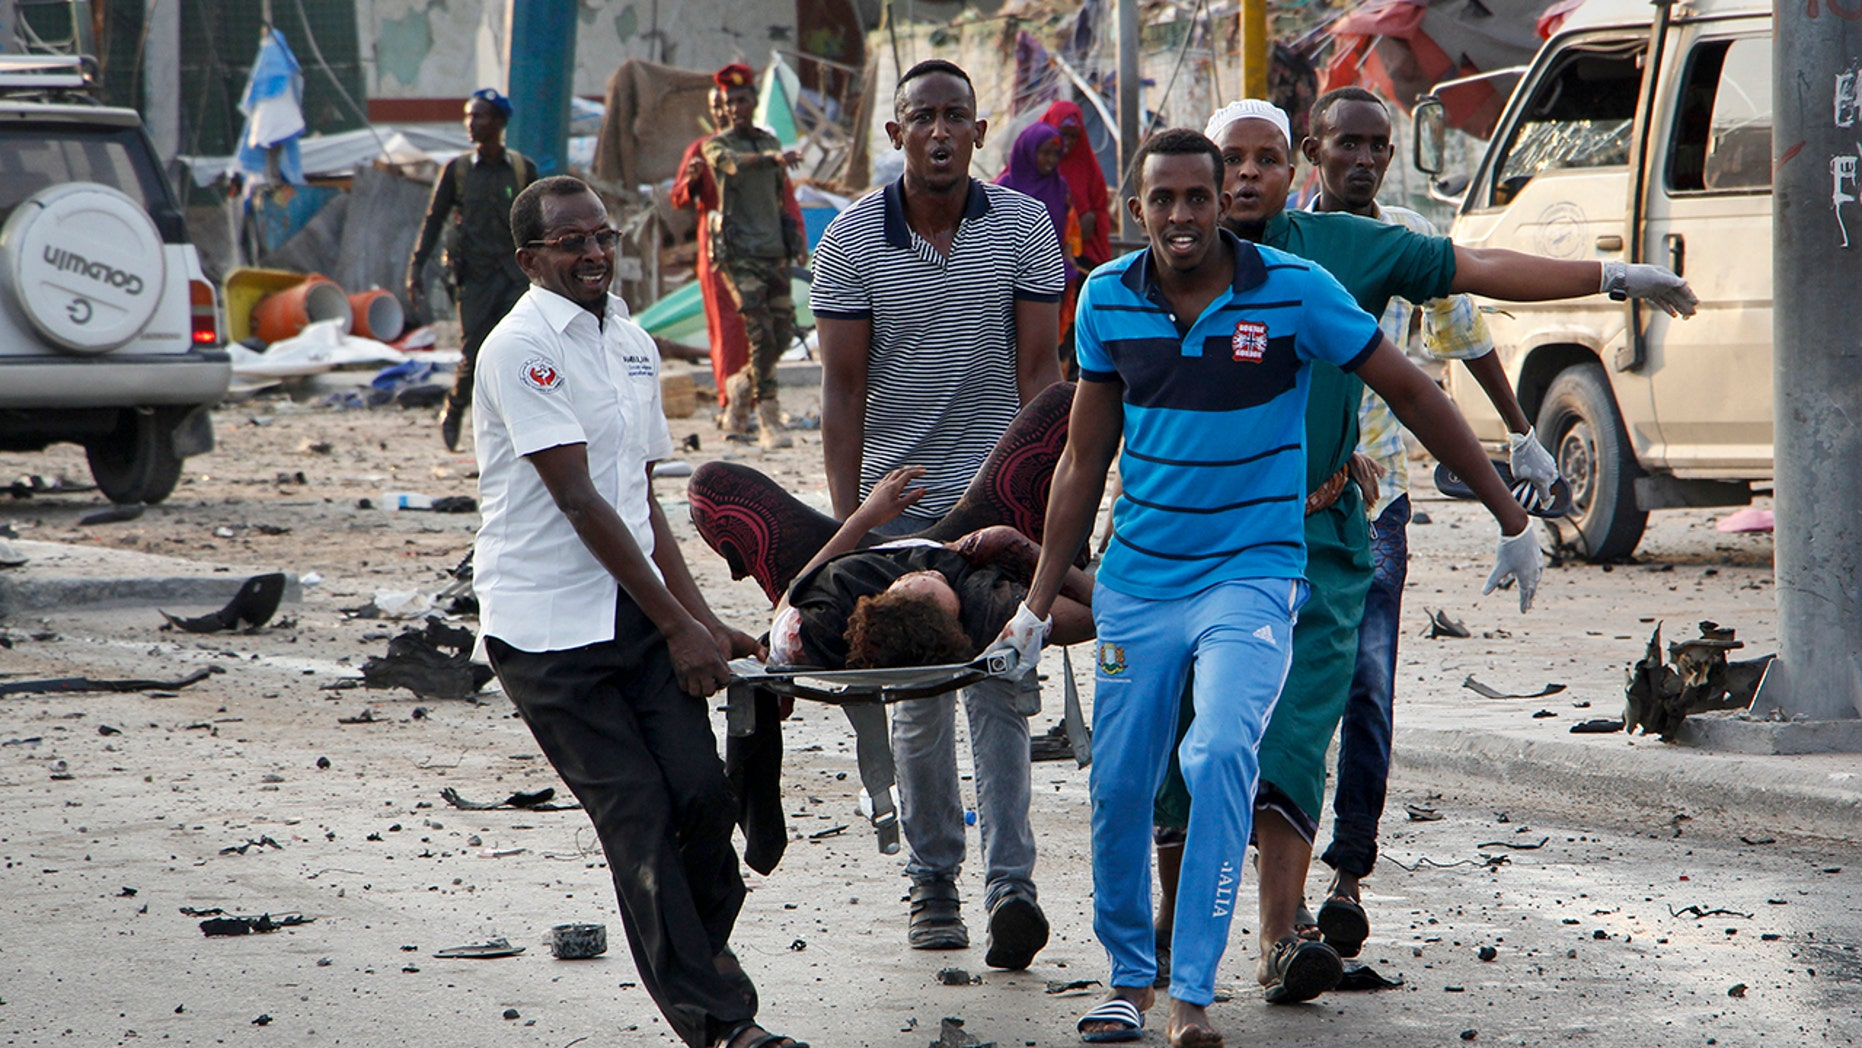 Death toll from Somalia hotel attack rises